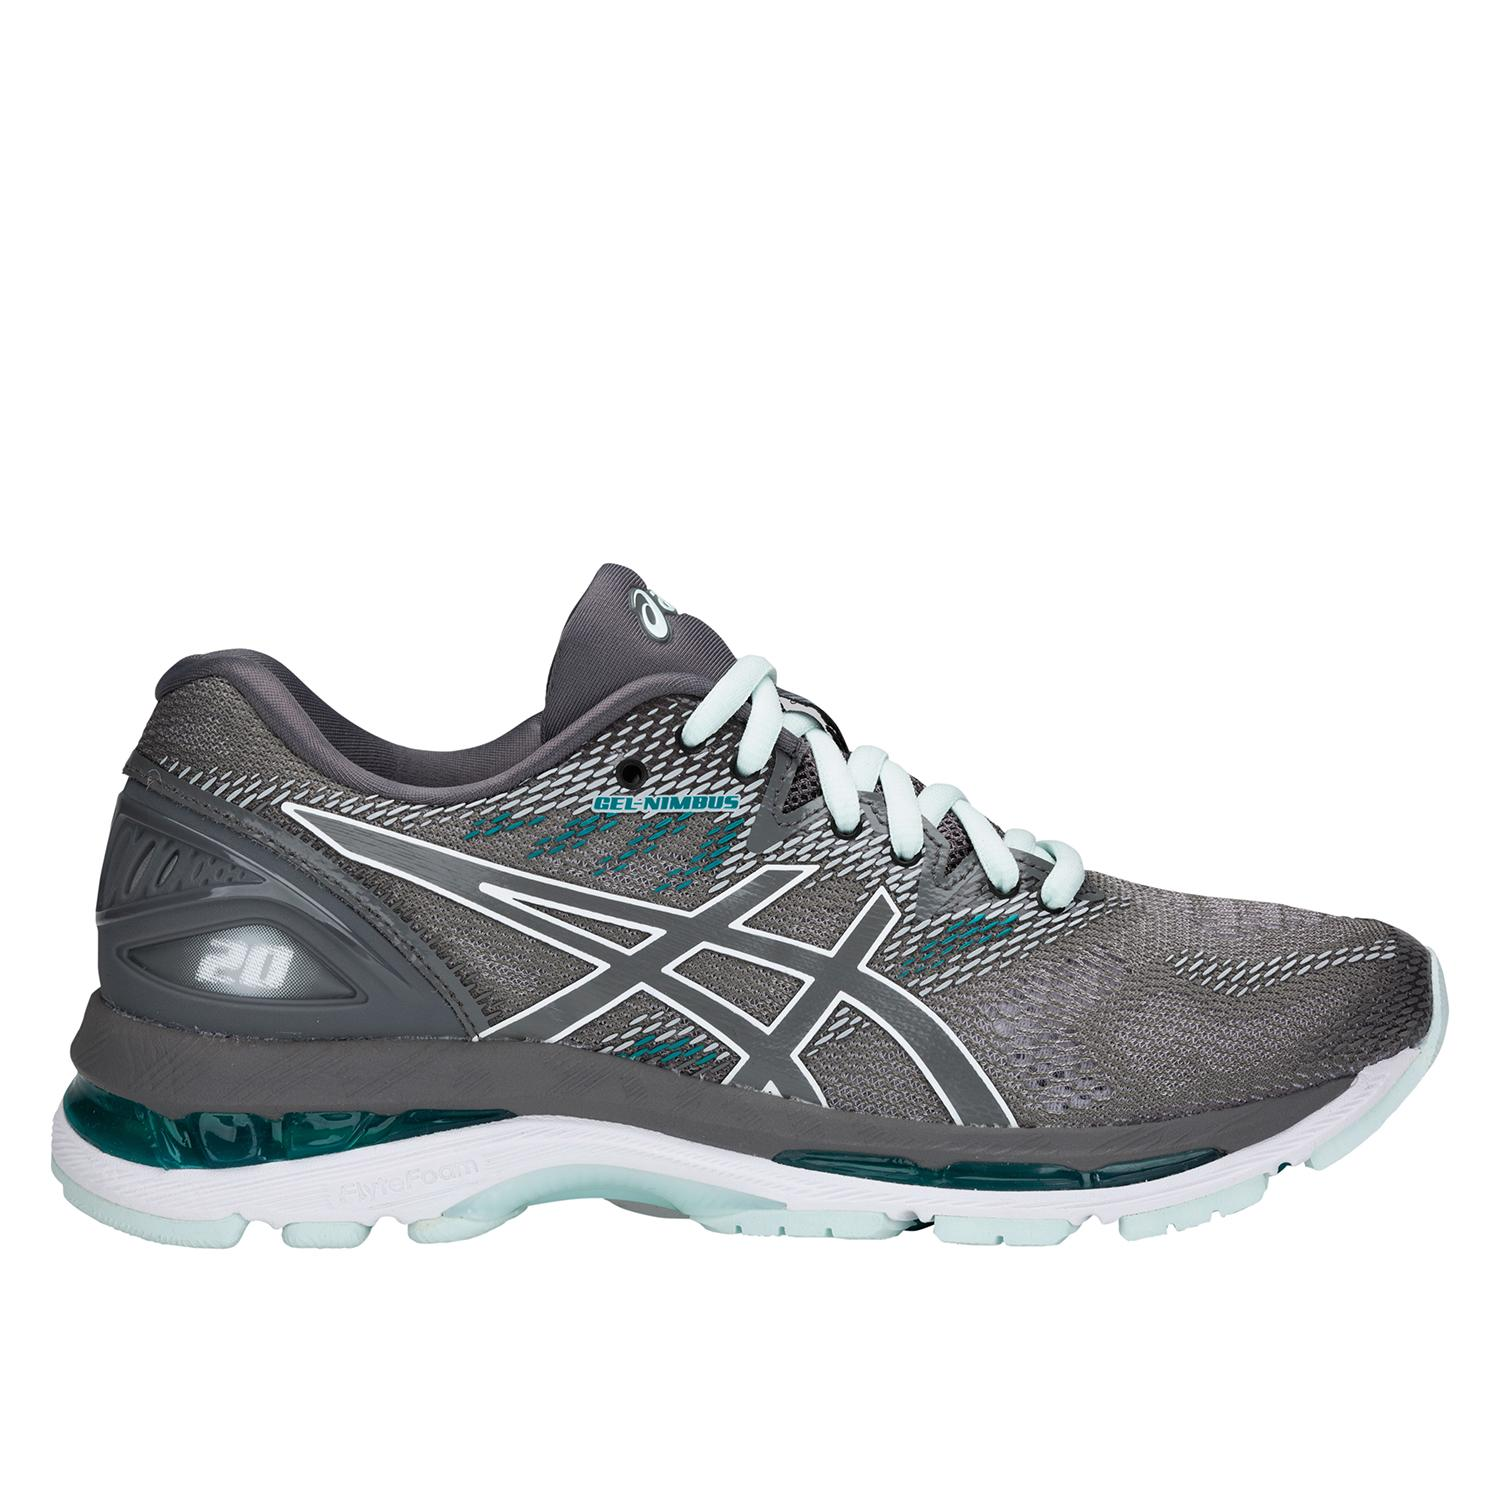 new arrival 8fb99 a4d21 ASICS GEL-Nimbus 20 Women s Running Shoe in Black - Intersport Australia